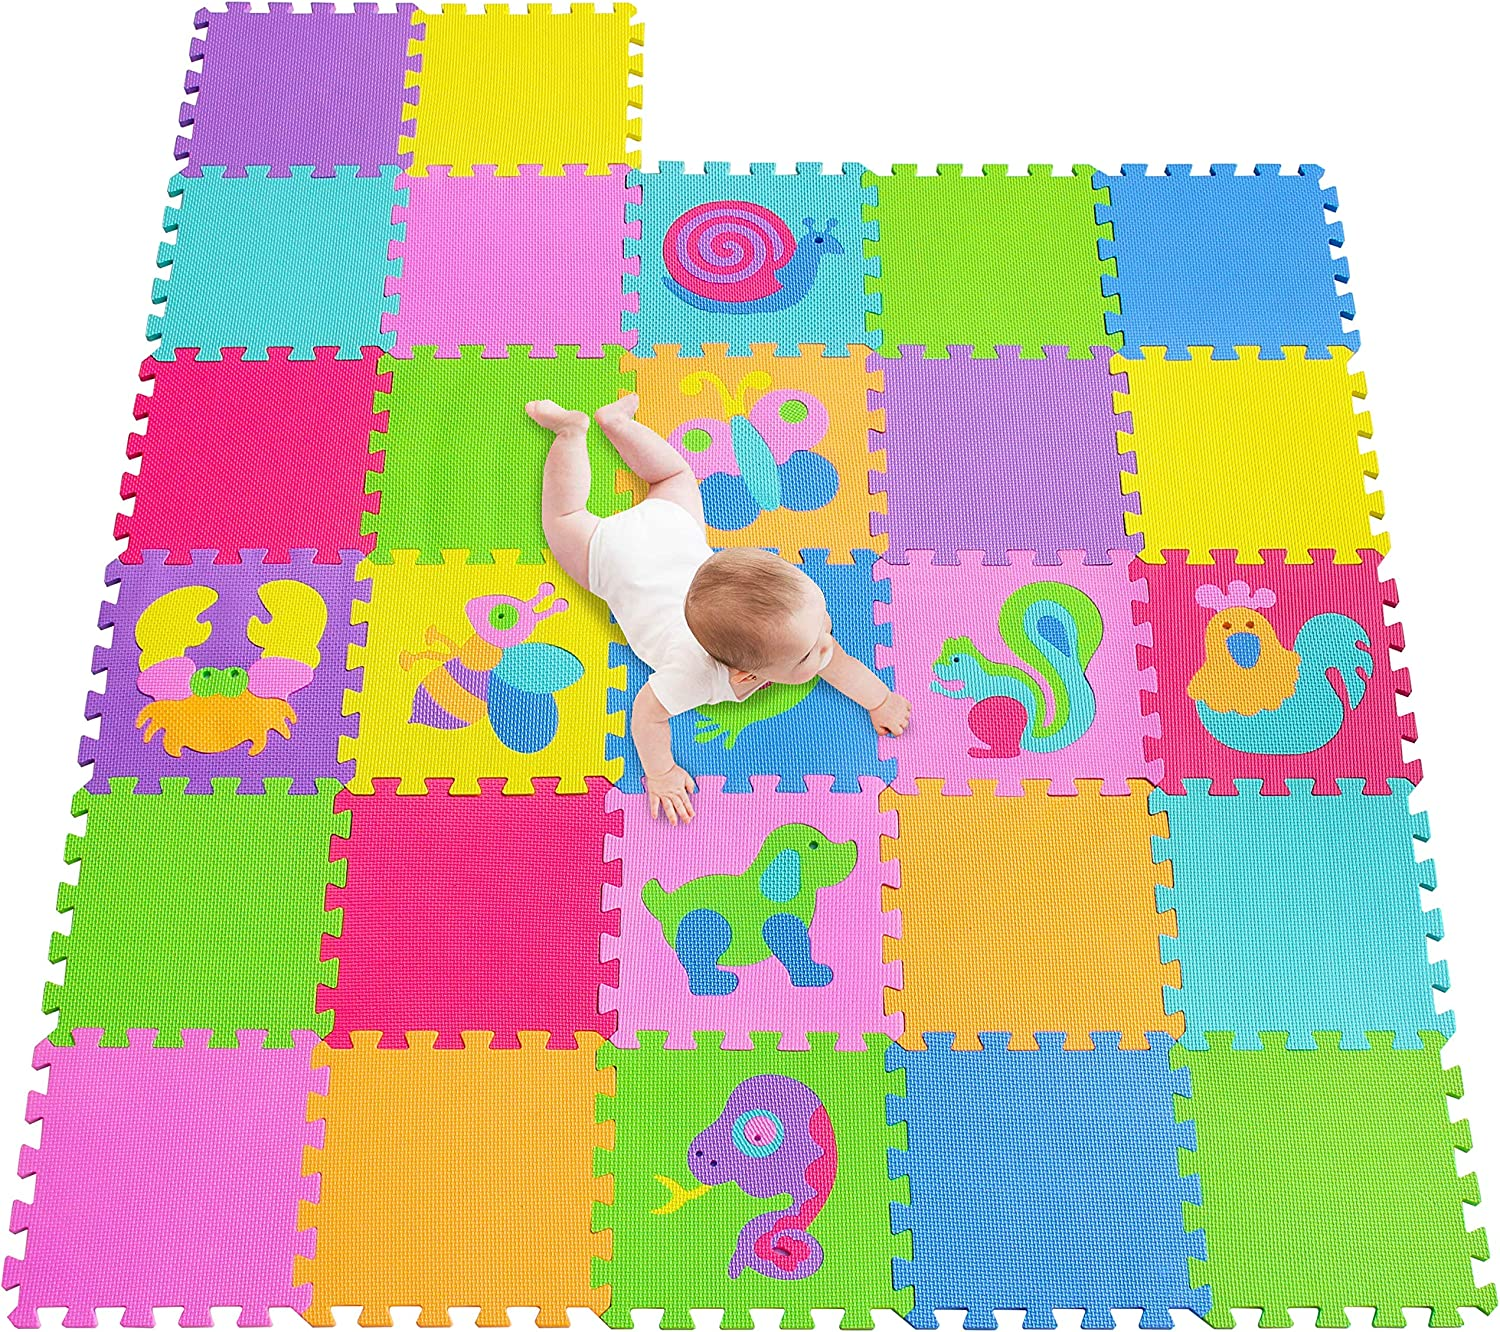 Meiqicool EVA Foam Puzzle Play Mat for Baby Non Toxic Interlocking Soft Floor Tiles Multi Color 27 PCS 1011CS9 Kids Toddler Infant Children Room and Yard Exercise Gym Decor